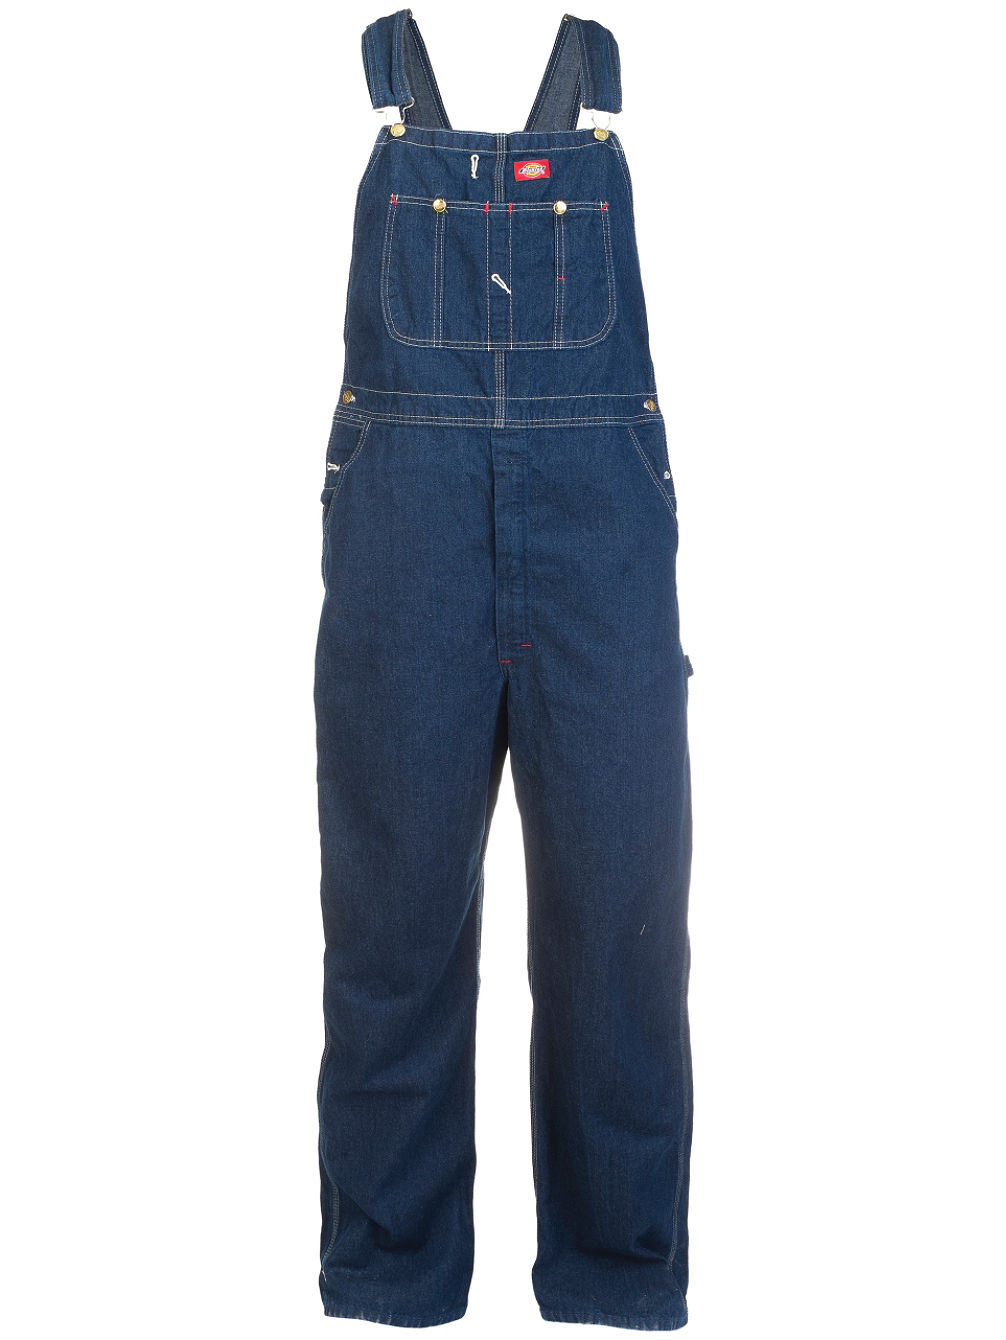 Try our bib overalls in durable cotton duck or Carhartt Men's Arctic Quilt Lined Duck Bib Overalls R by Carhartt. $ - $ $ 98 $ 36 Prime. FREE Shipping on eligible orders. Some sizes/colors are Prime eligible. out of 5 stars Product Features Multi-compartment bib pocket.